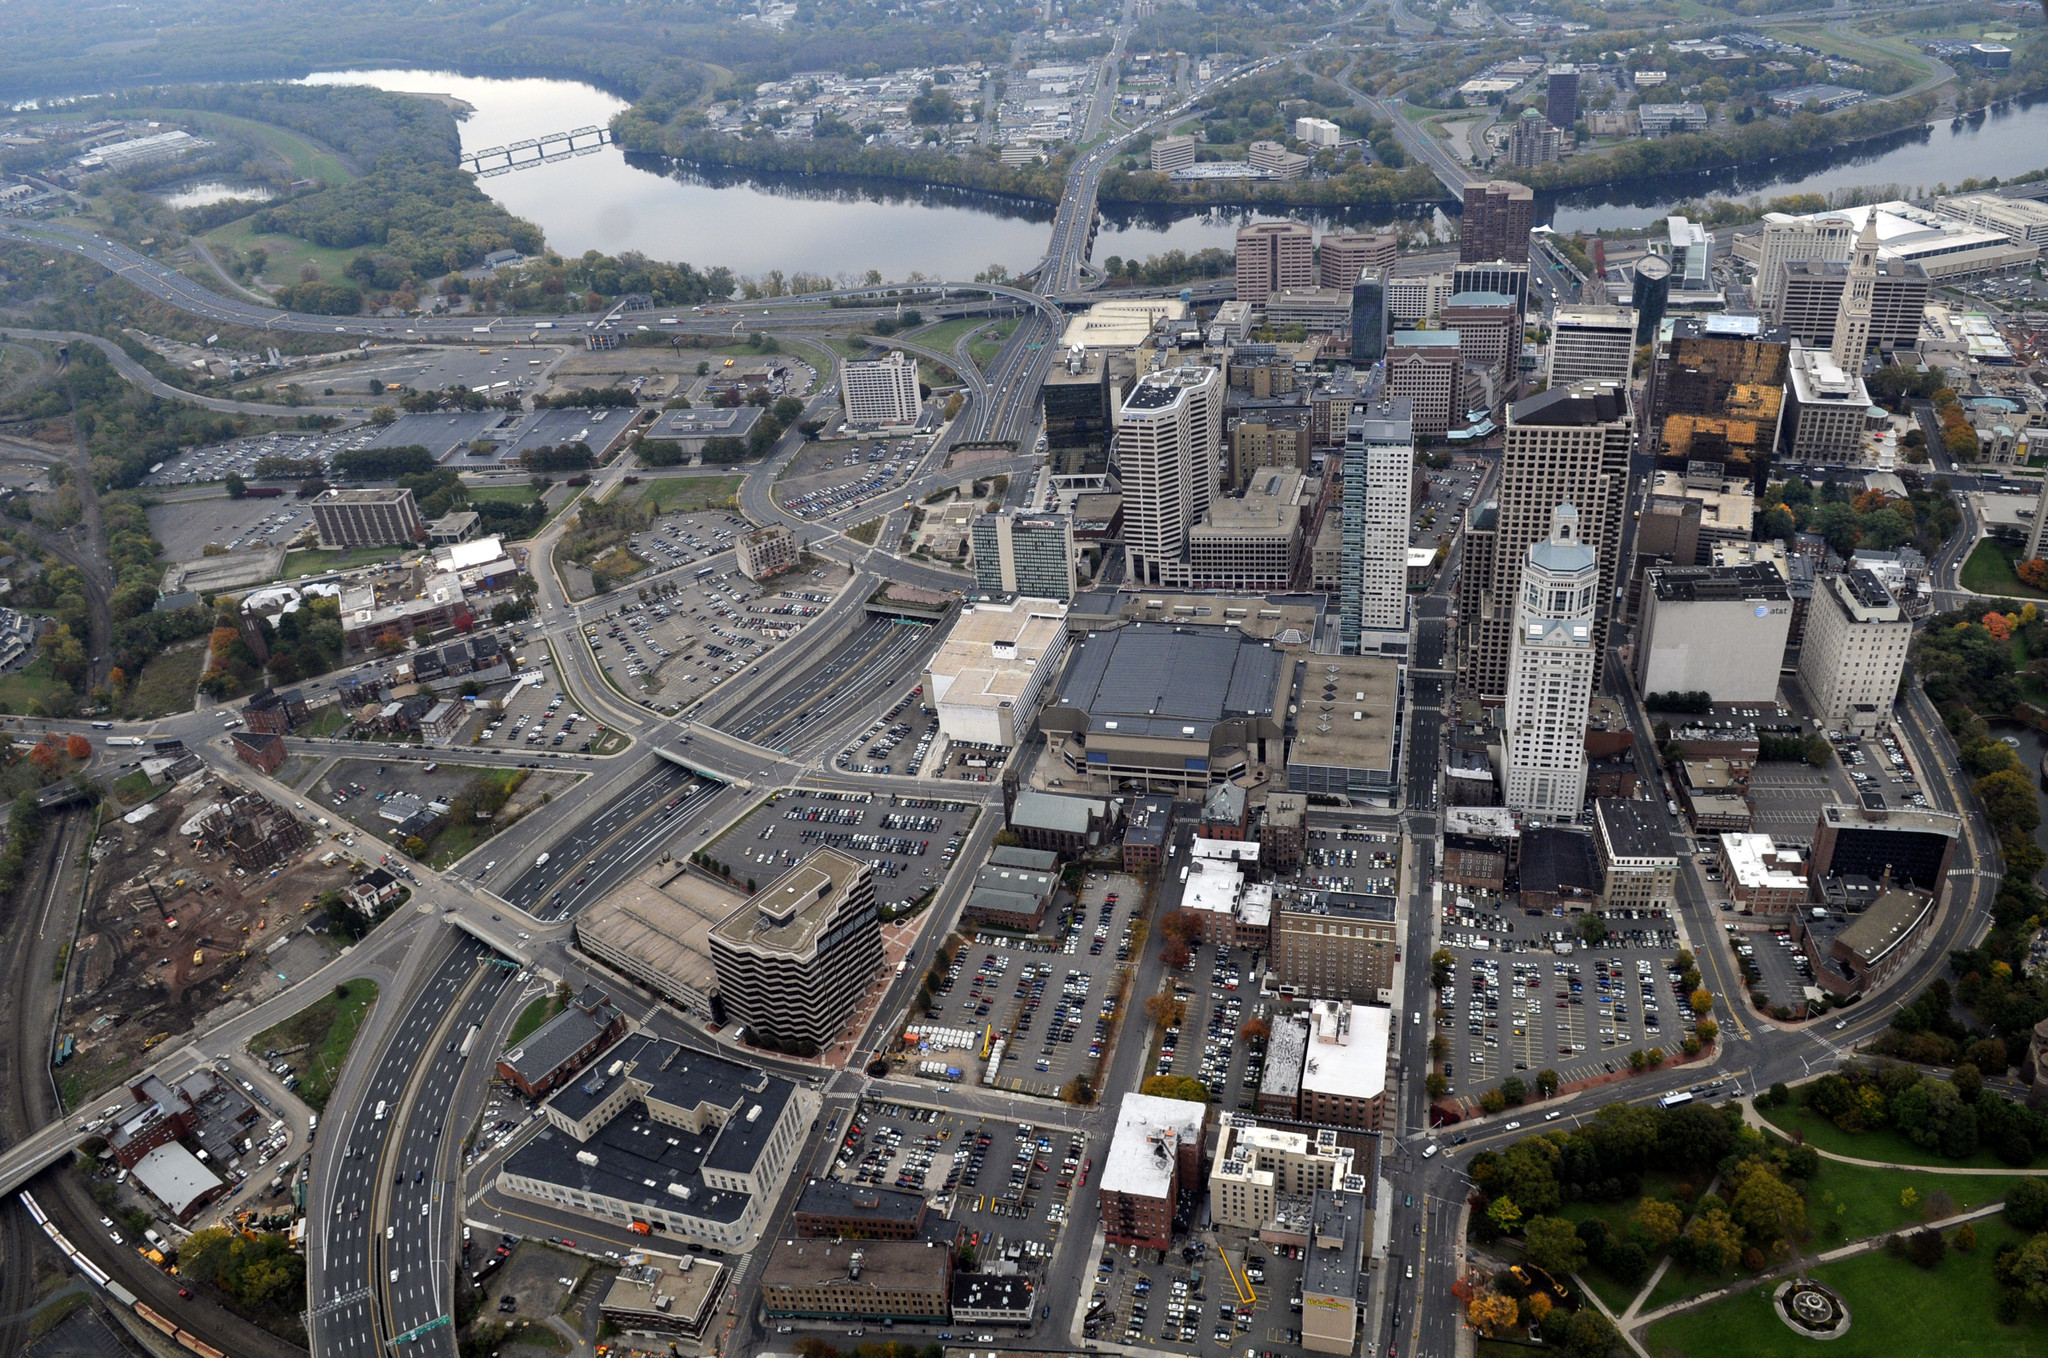 ... Development Contest In Hartford Enters Second Round - Hartford Courant